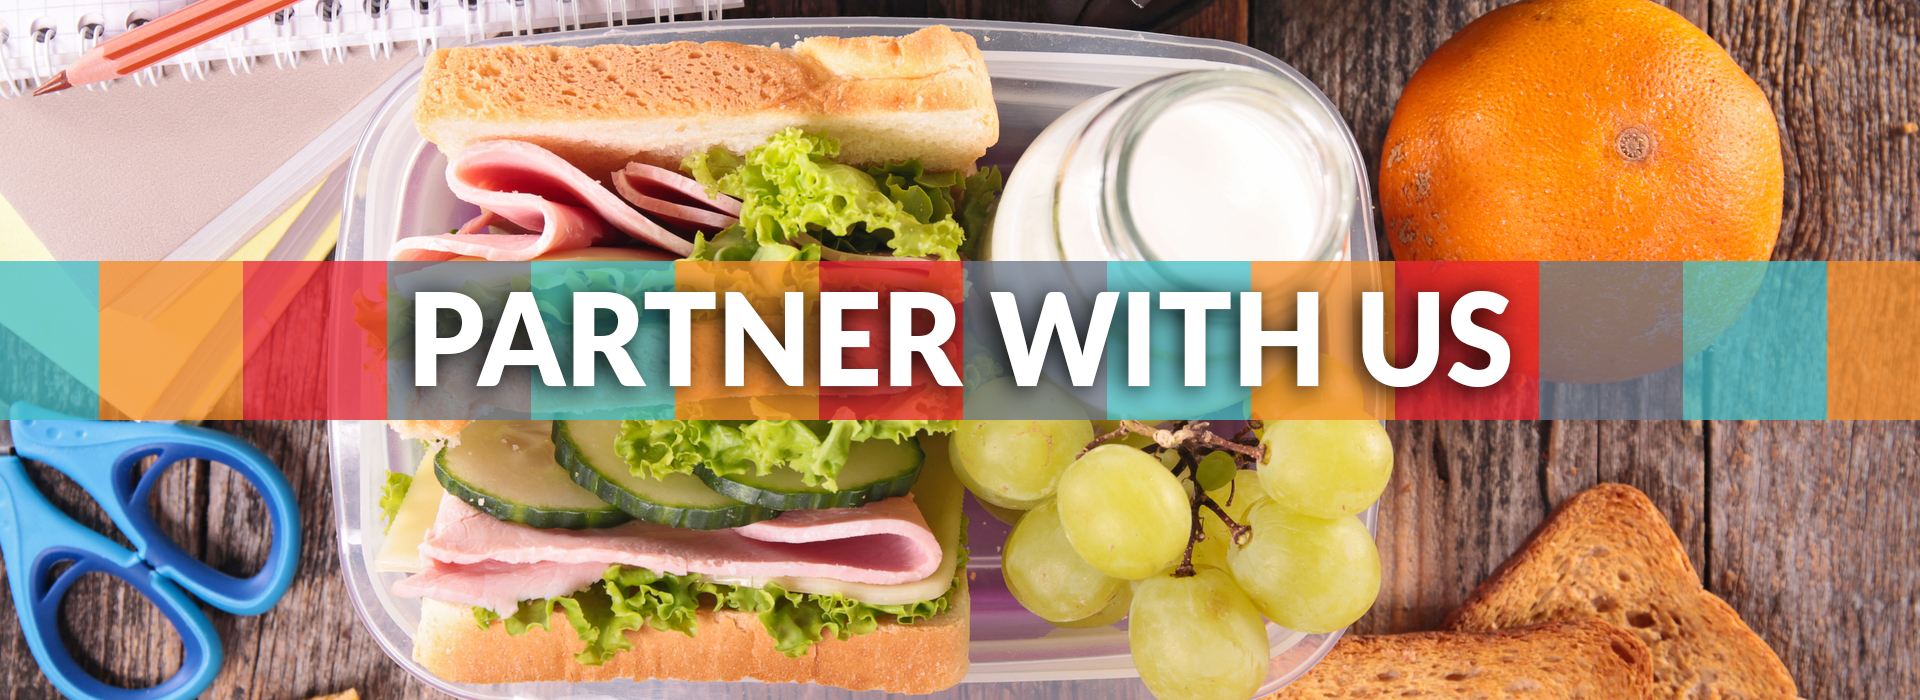 Partner With Us!